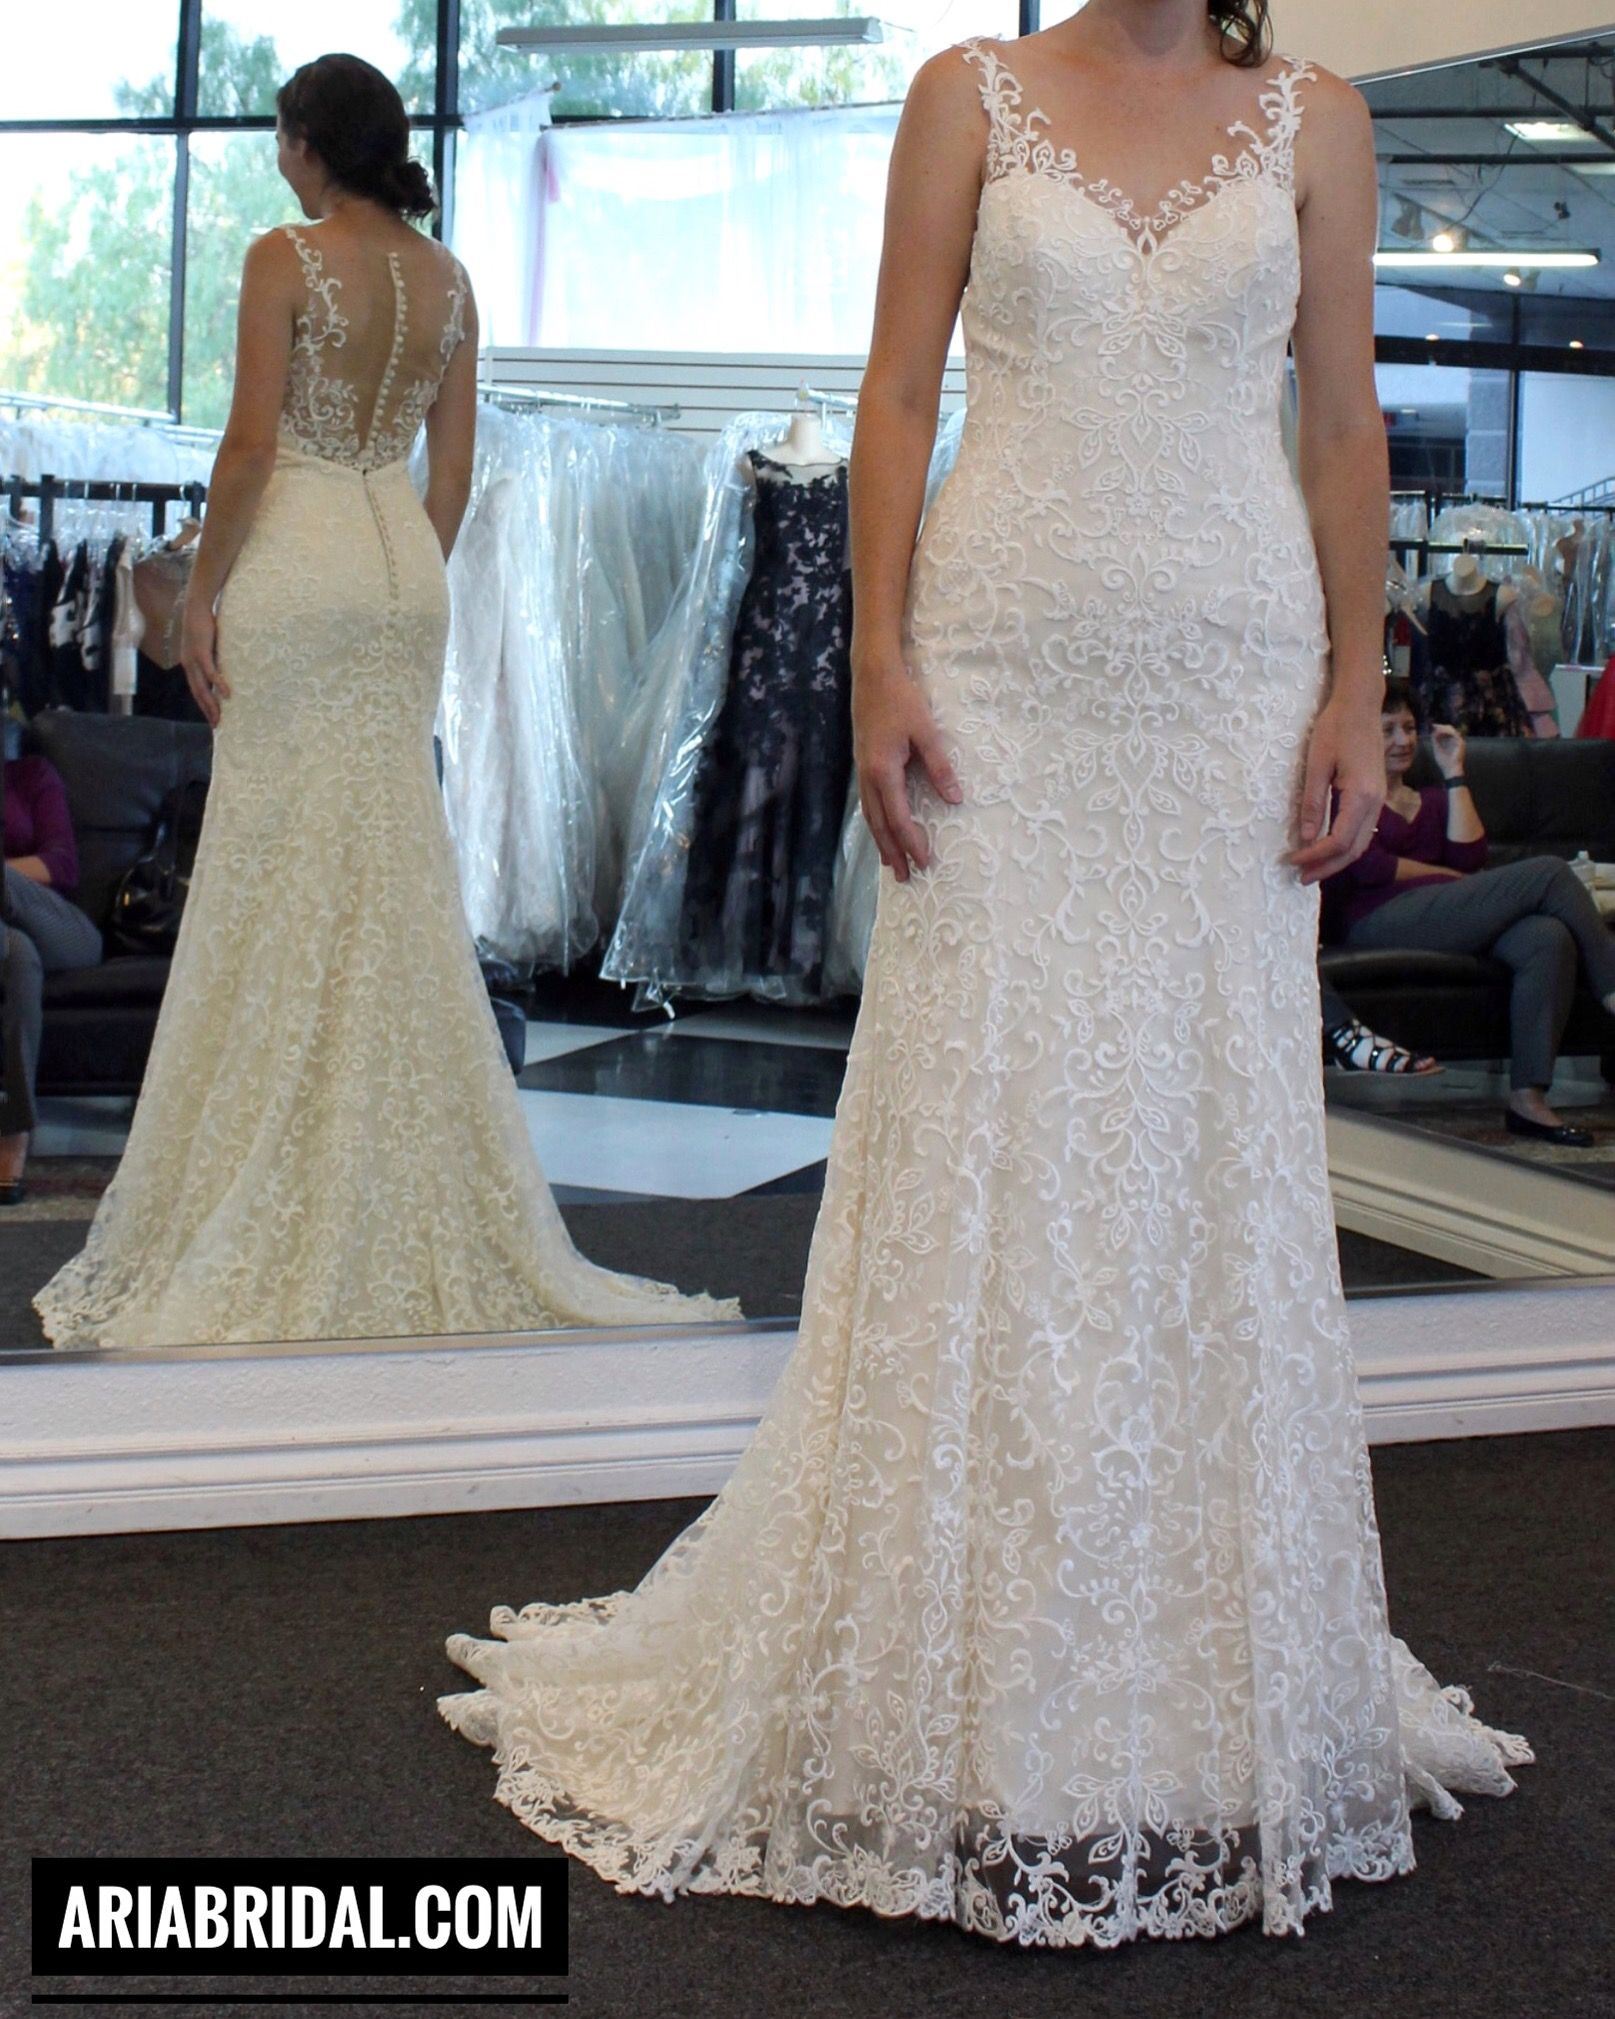 Wedding Dress at Aria Bridal in Escondido/ San Diego, California. Beautiful Wedding Dresses and Bridal Gowns in San Diego.